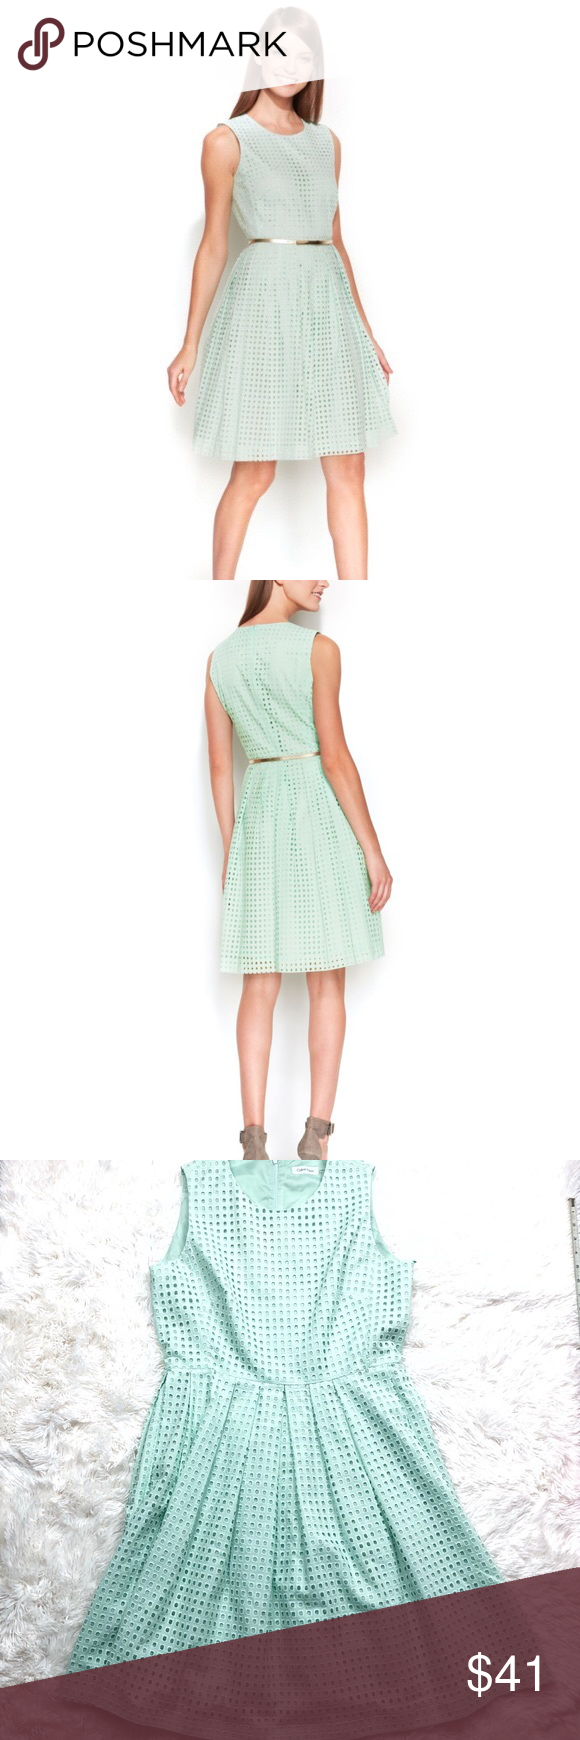 e51f72e5a4c5 Calvin Klein mint green eyelet flare dress Calvin Klein mint green eyelet sleeveless  flare dress Size  12 Excellent used condition I accept lowball offers!